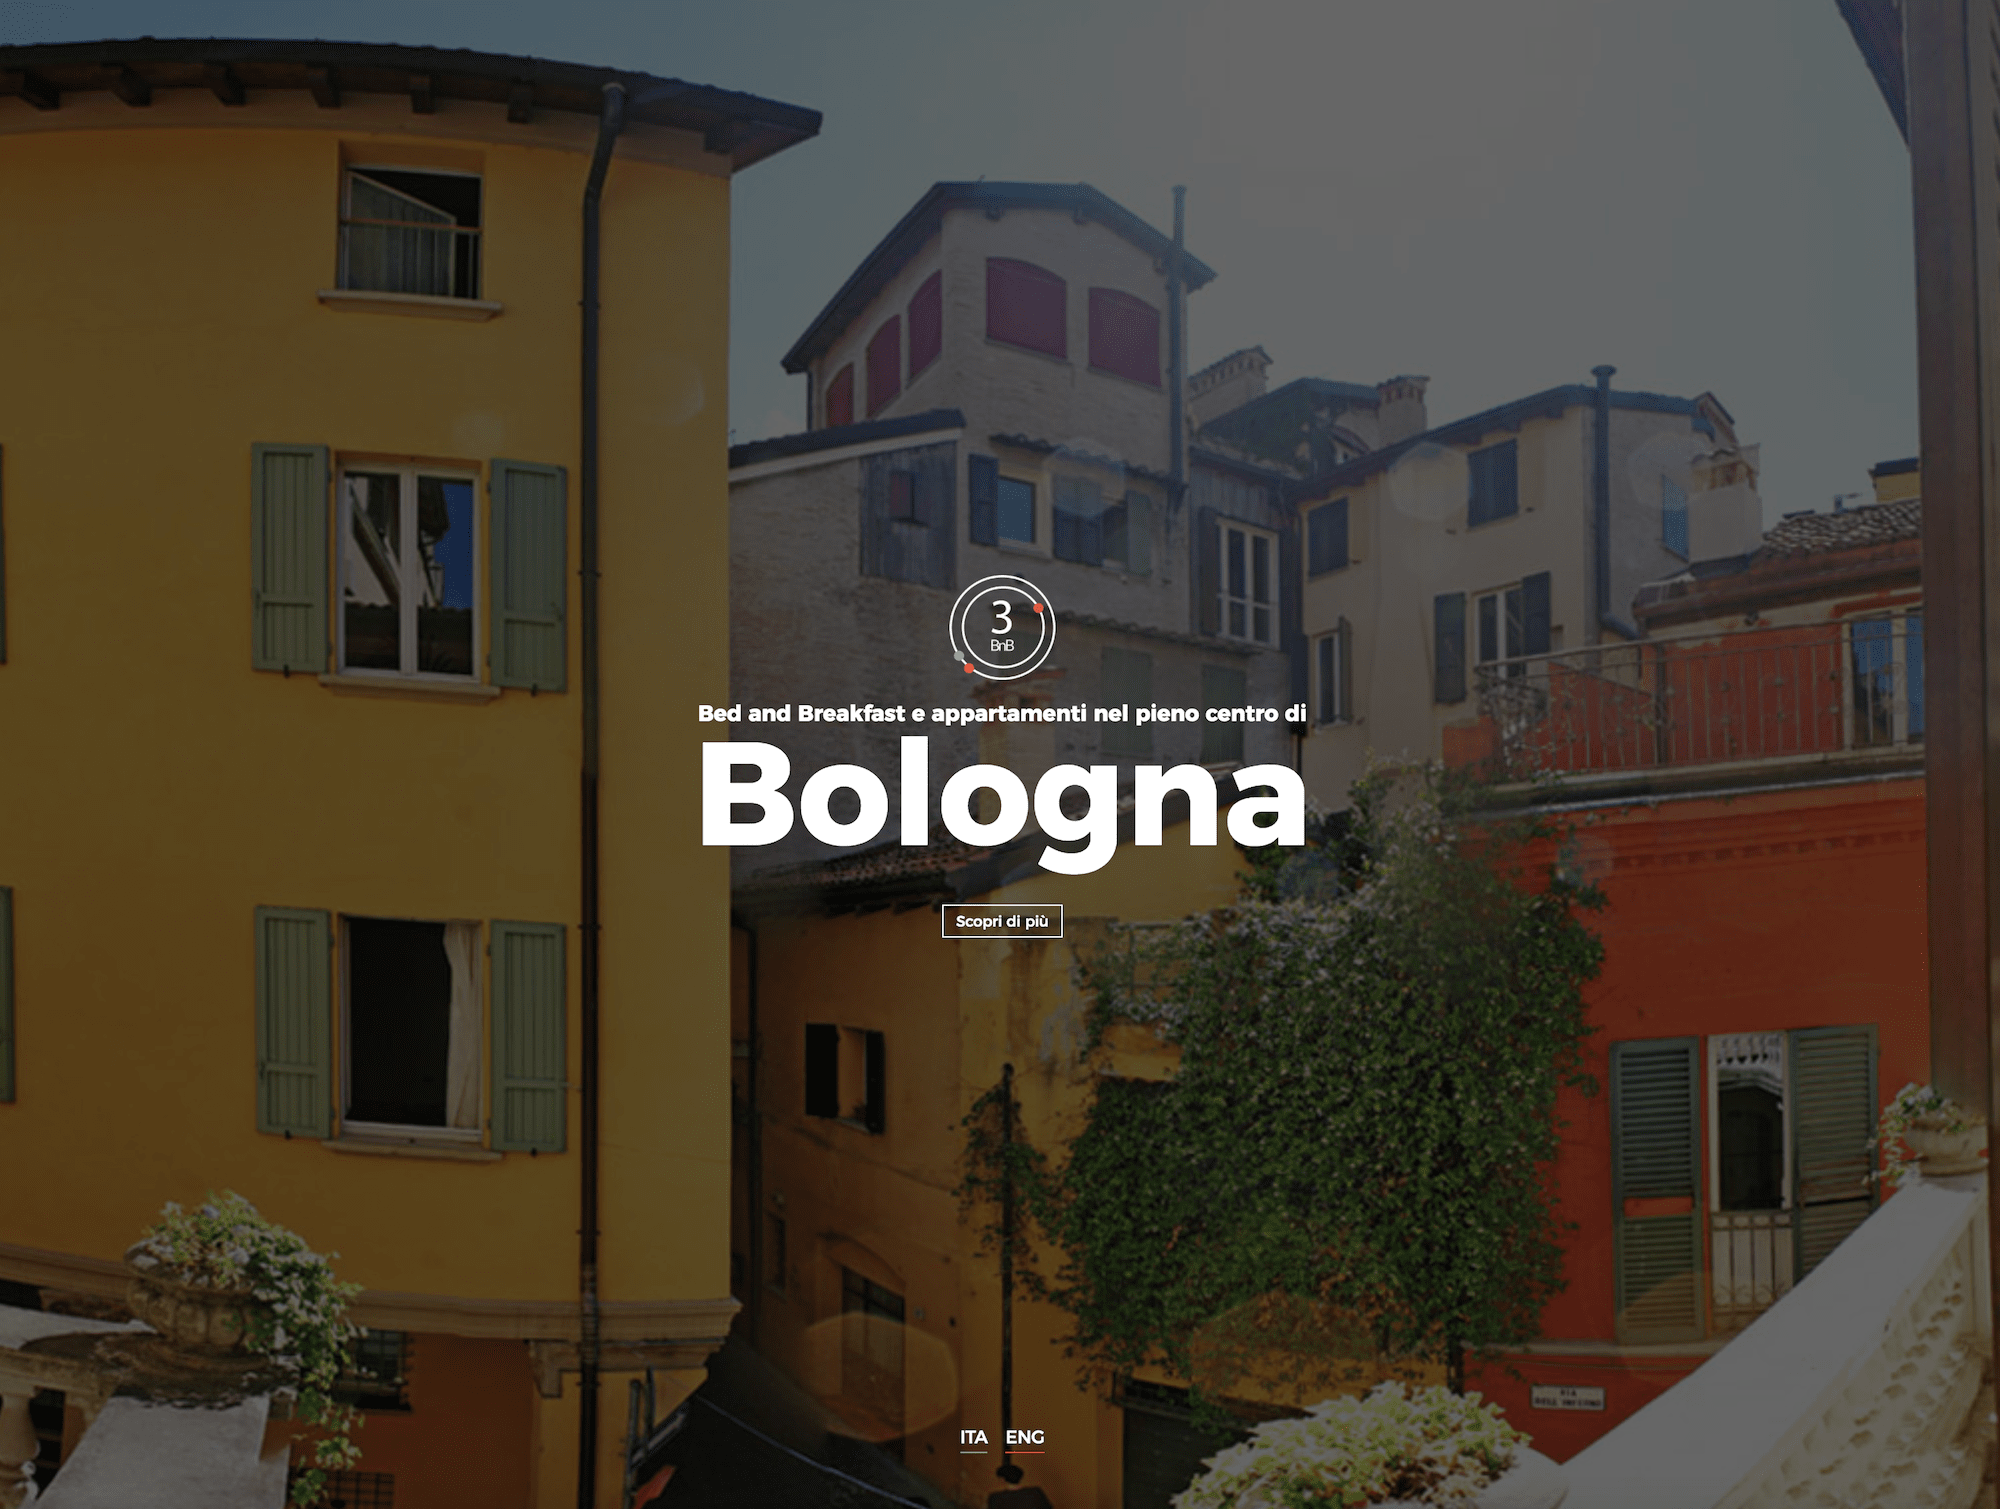 Sito internet del Bed and Breakfast di Bologna 3bnb